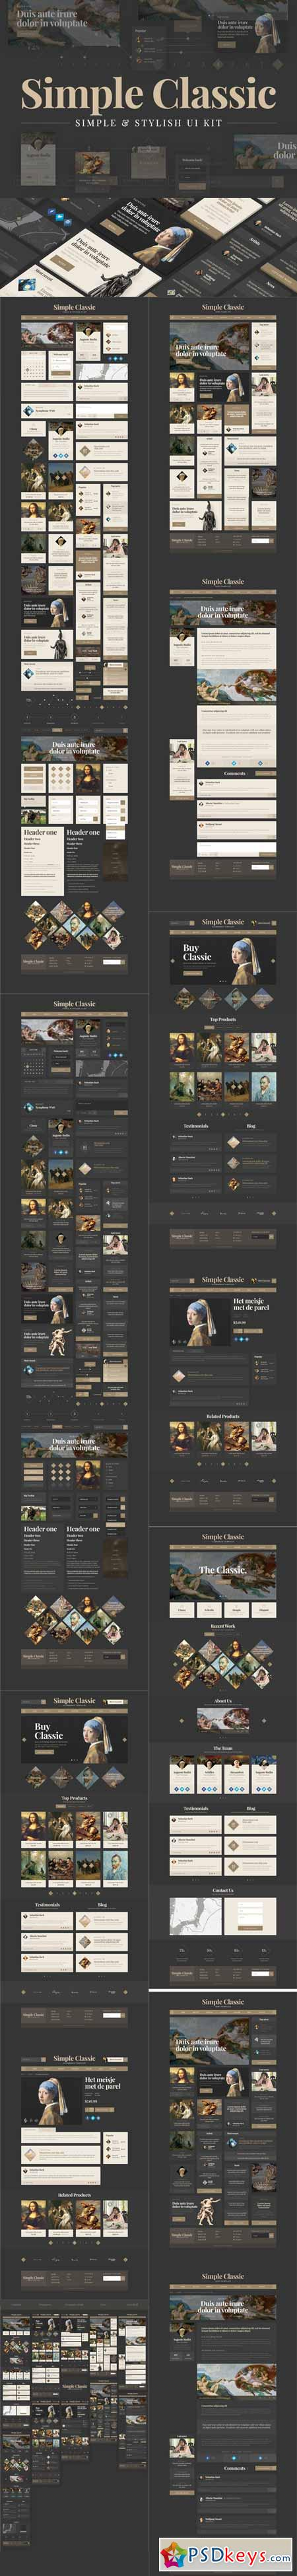 Simple Classic UI Kit 442882